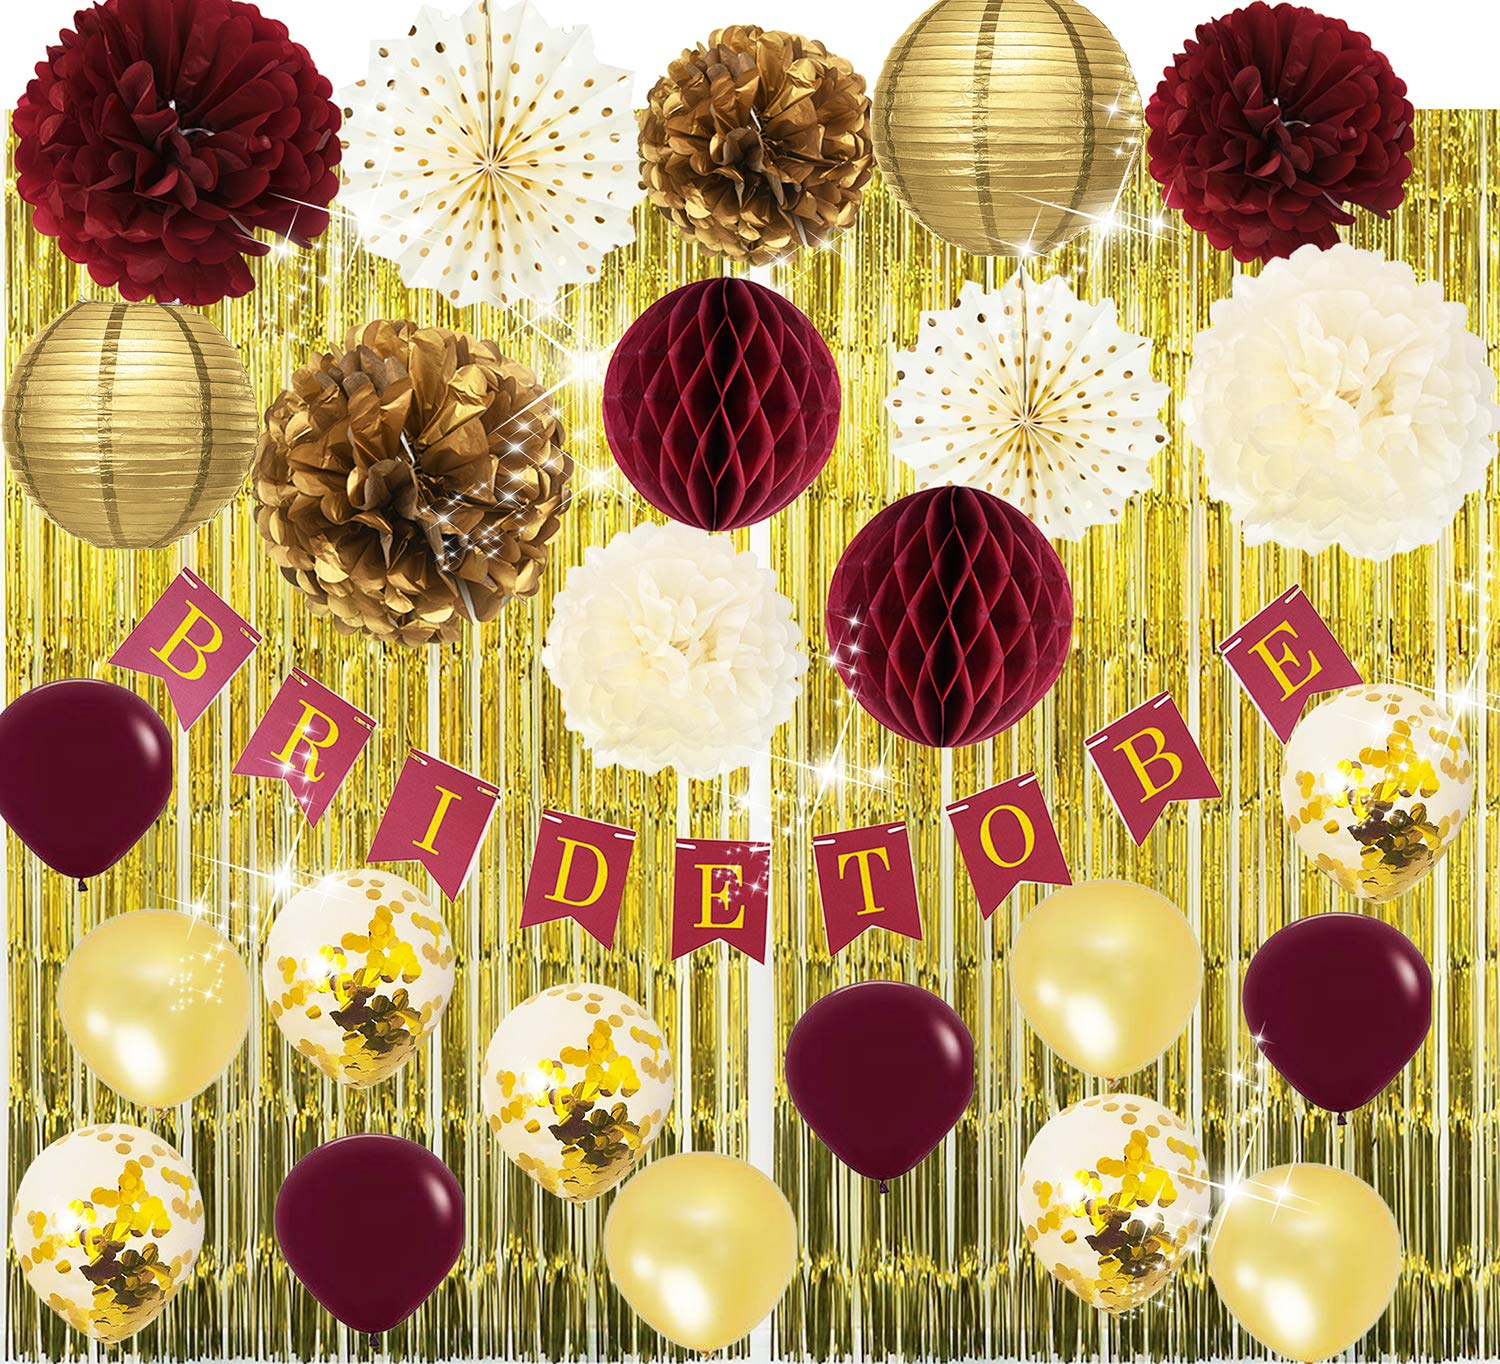 Qian's Party Bridal Shower Decorations Burgundy Gold/Fall Wedding Decor Burgundy Bachelorette Party Decorations Polka Dot Fans Bride to Be Banner Gold Foil Fringe Curtains Engagement Photo Backdrop